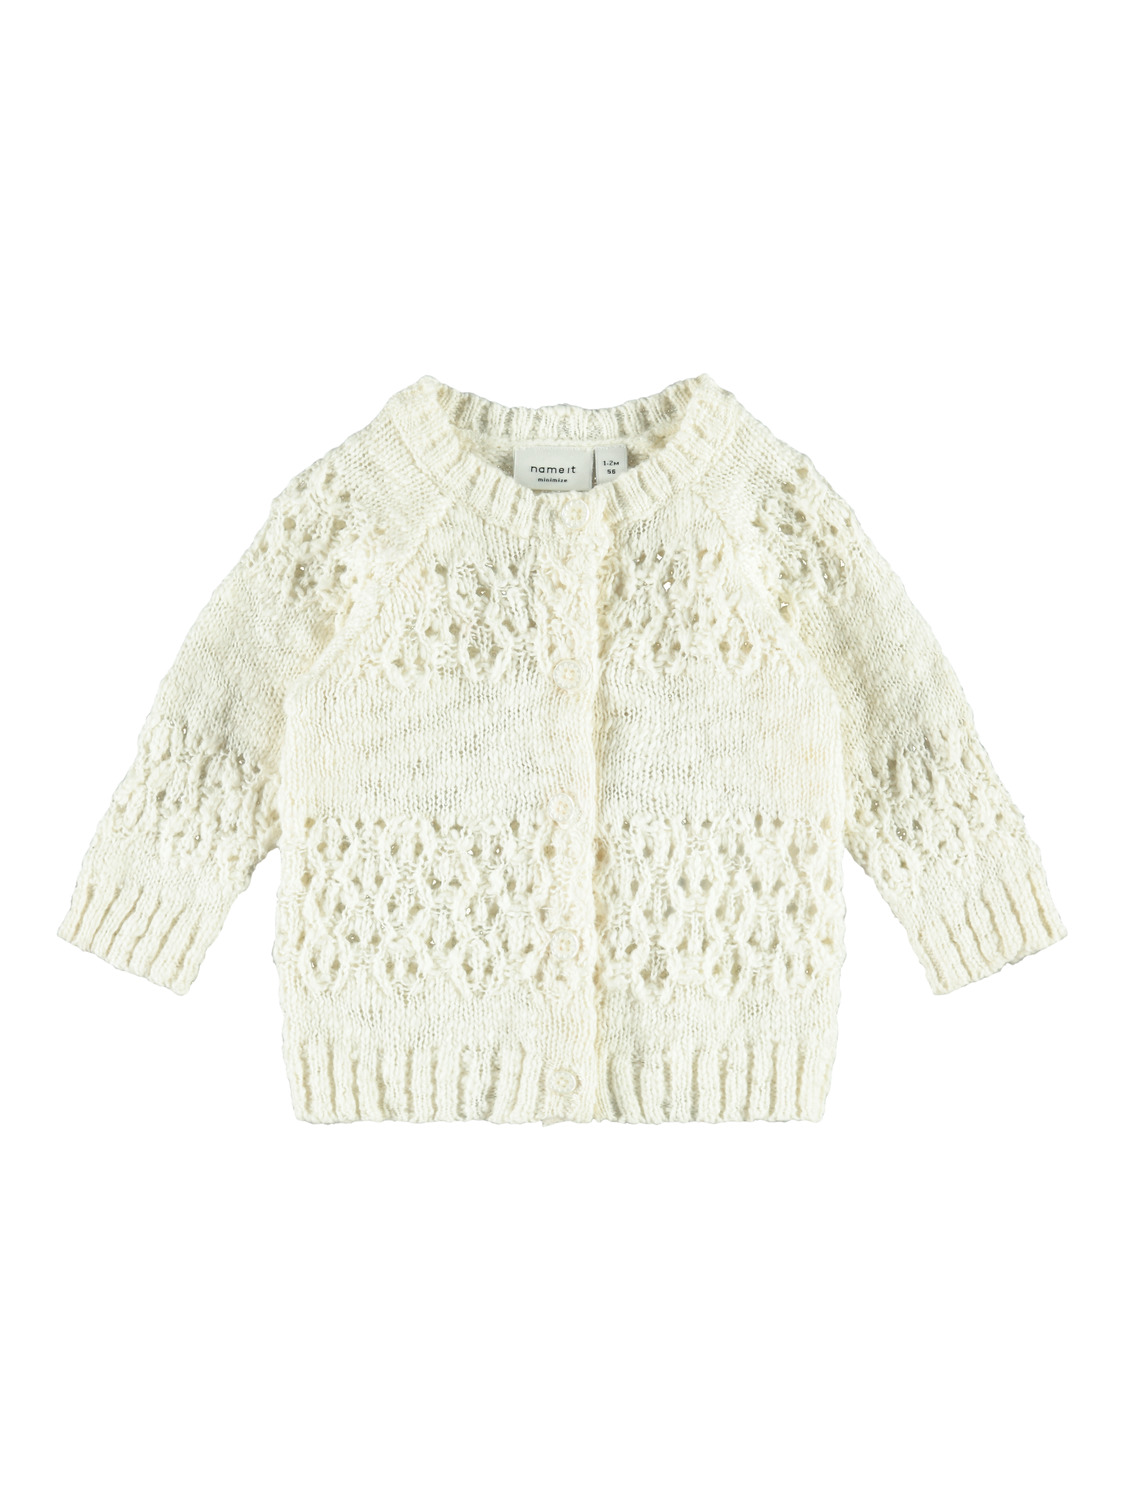 Baby Knitted Cardigan Made Of Organic Cotton